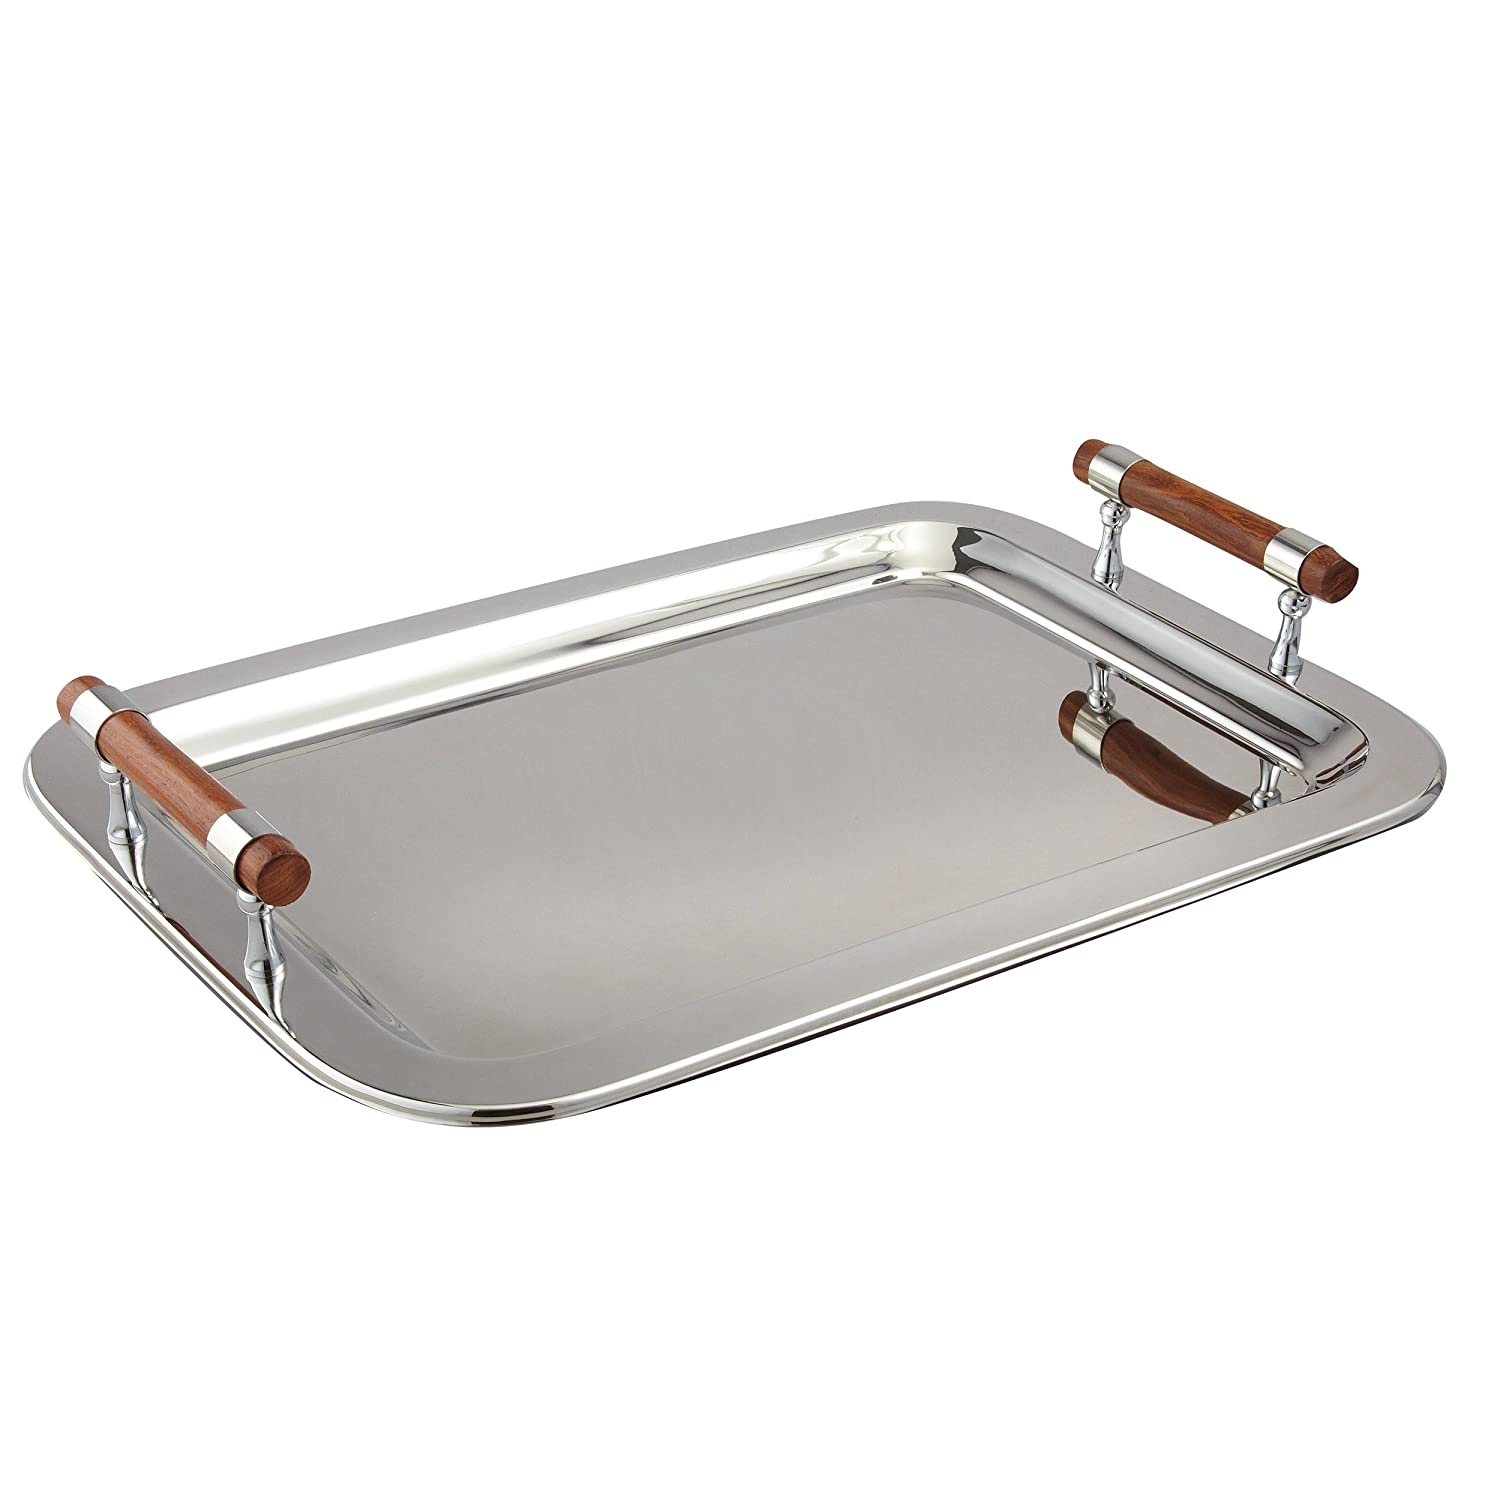 amazoncom  elegance stainless steel large rectangular tray with  - amazoncom  elegance stainless steel large rectangular tray with woodhandles  by inch silver serving trays